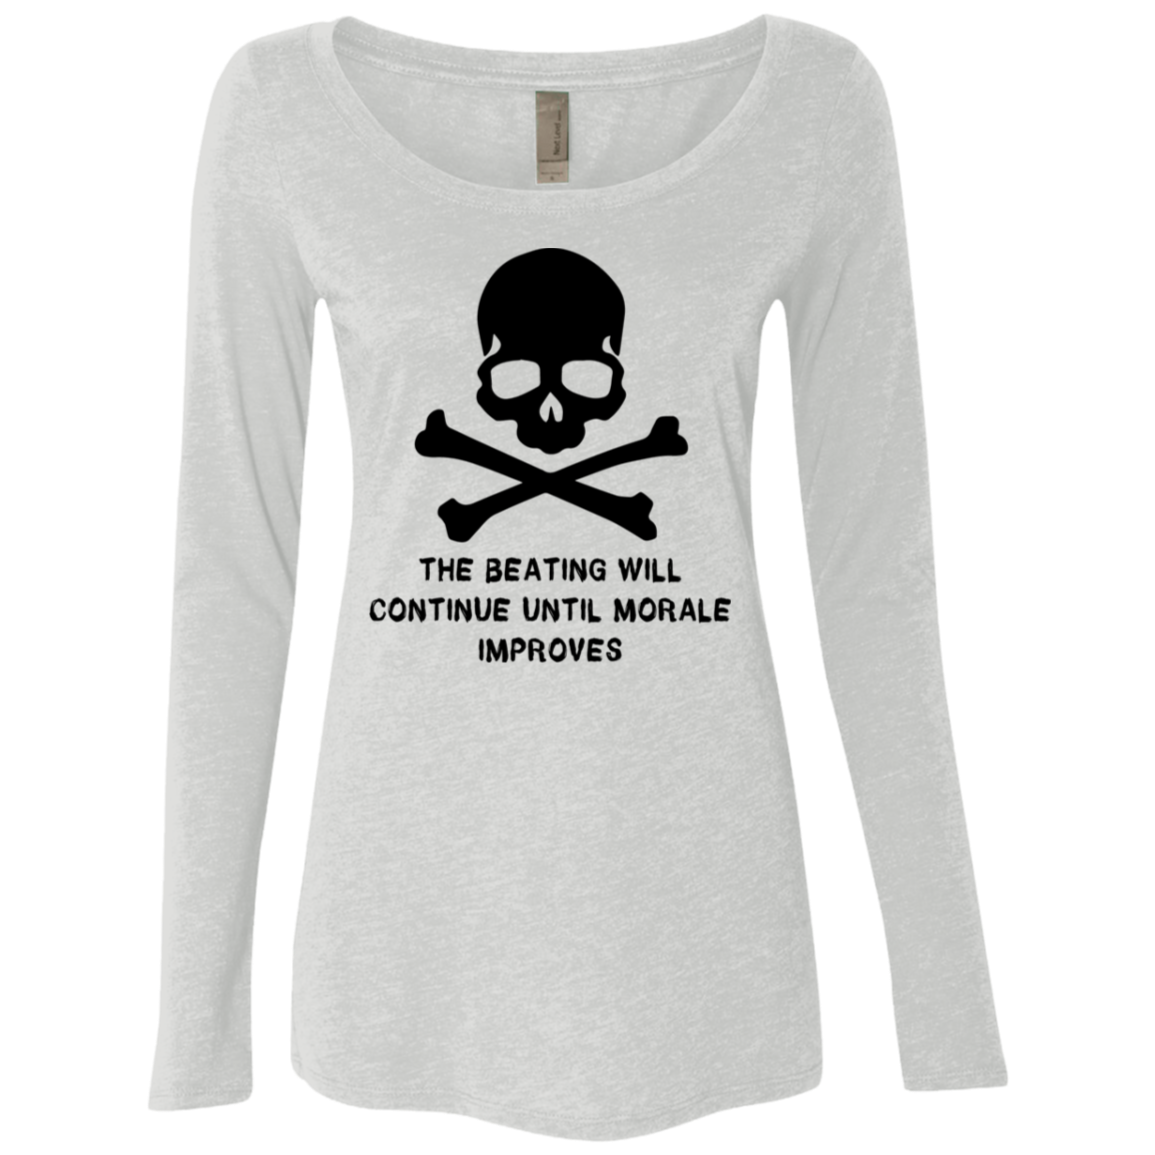 The Beating Will Continue Ultil The Morale Improves Women's Long Sleeve Tee